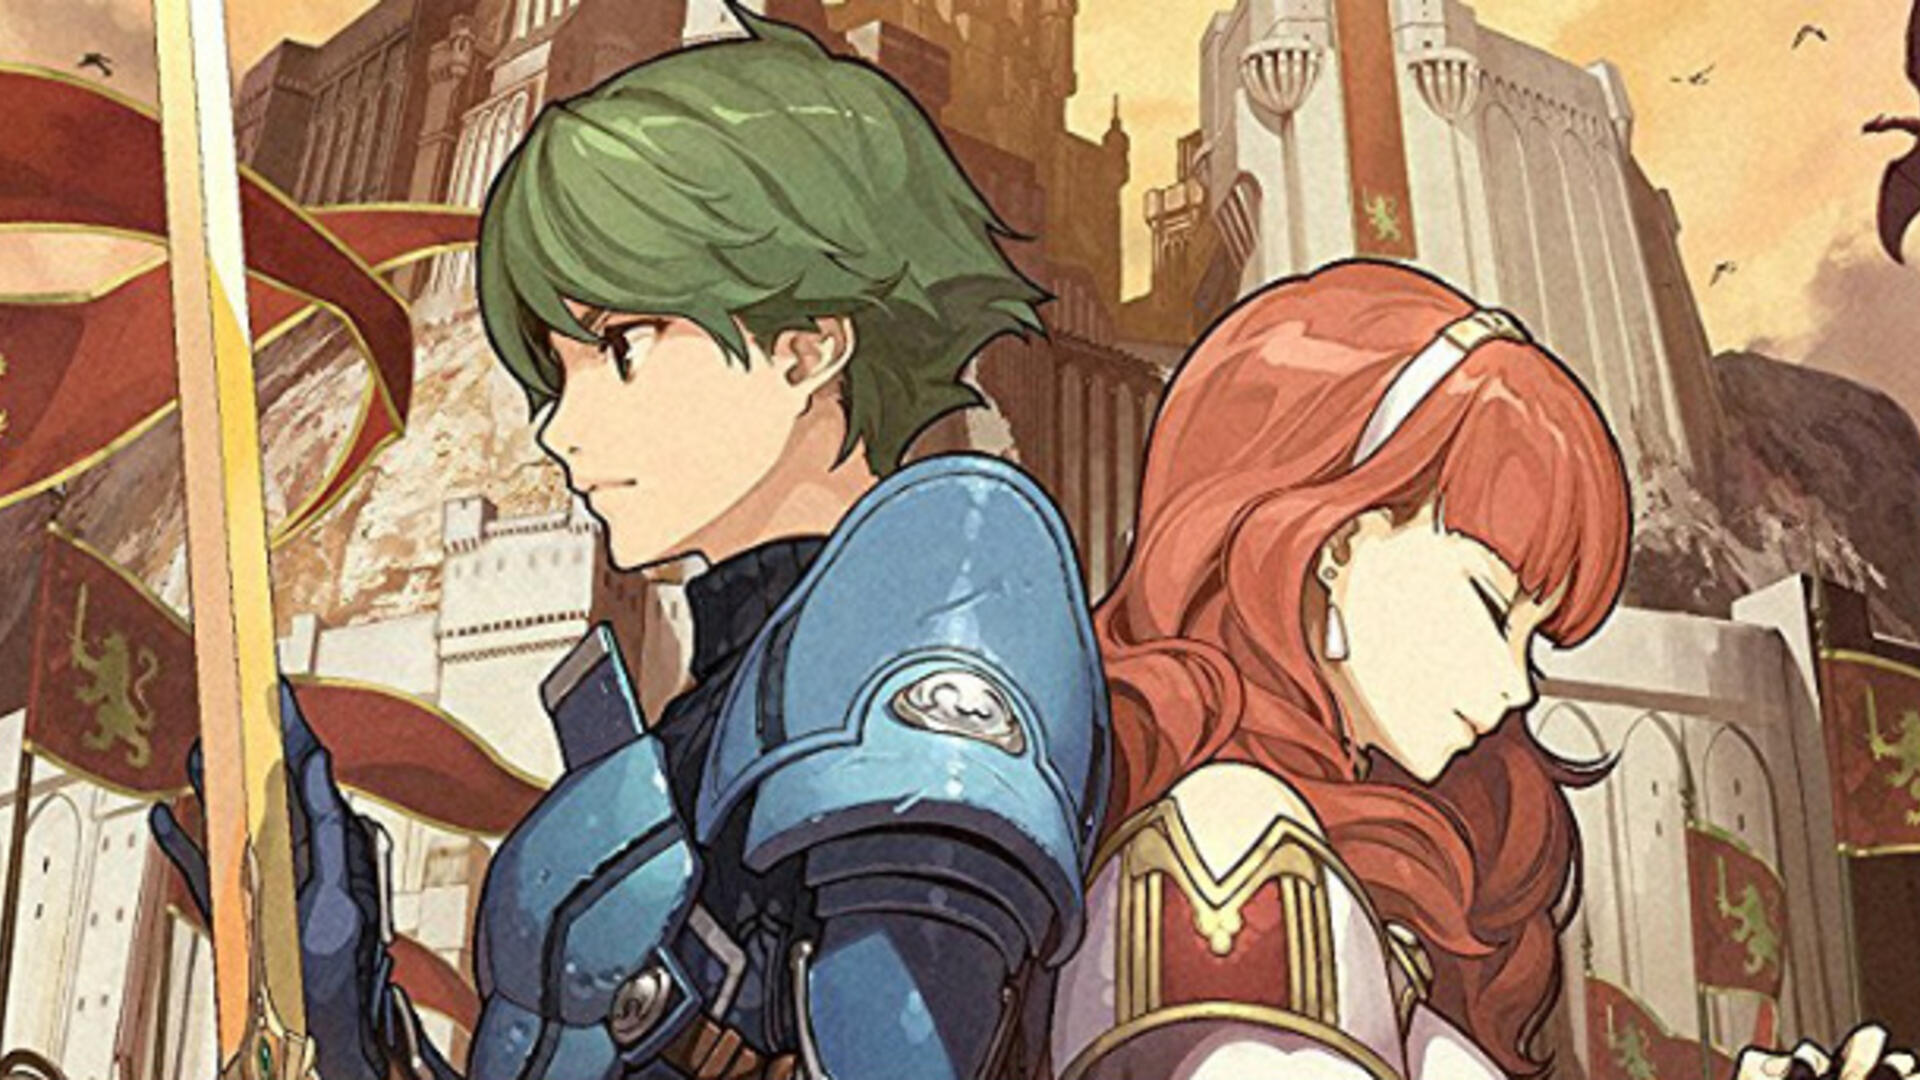 Fire Emblem Echoes: Shadows of Valentia Review: Faithful to a Fault